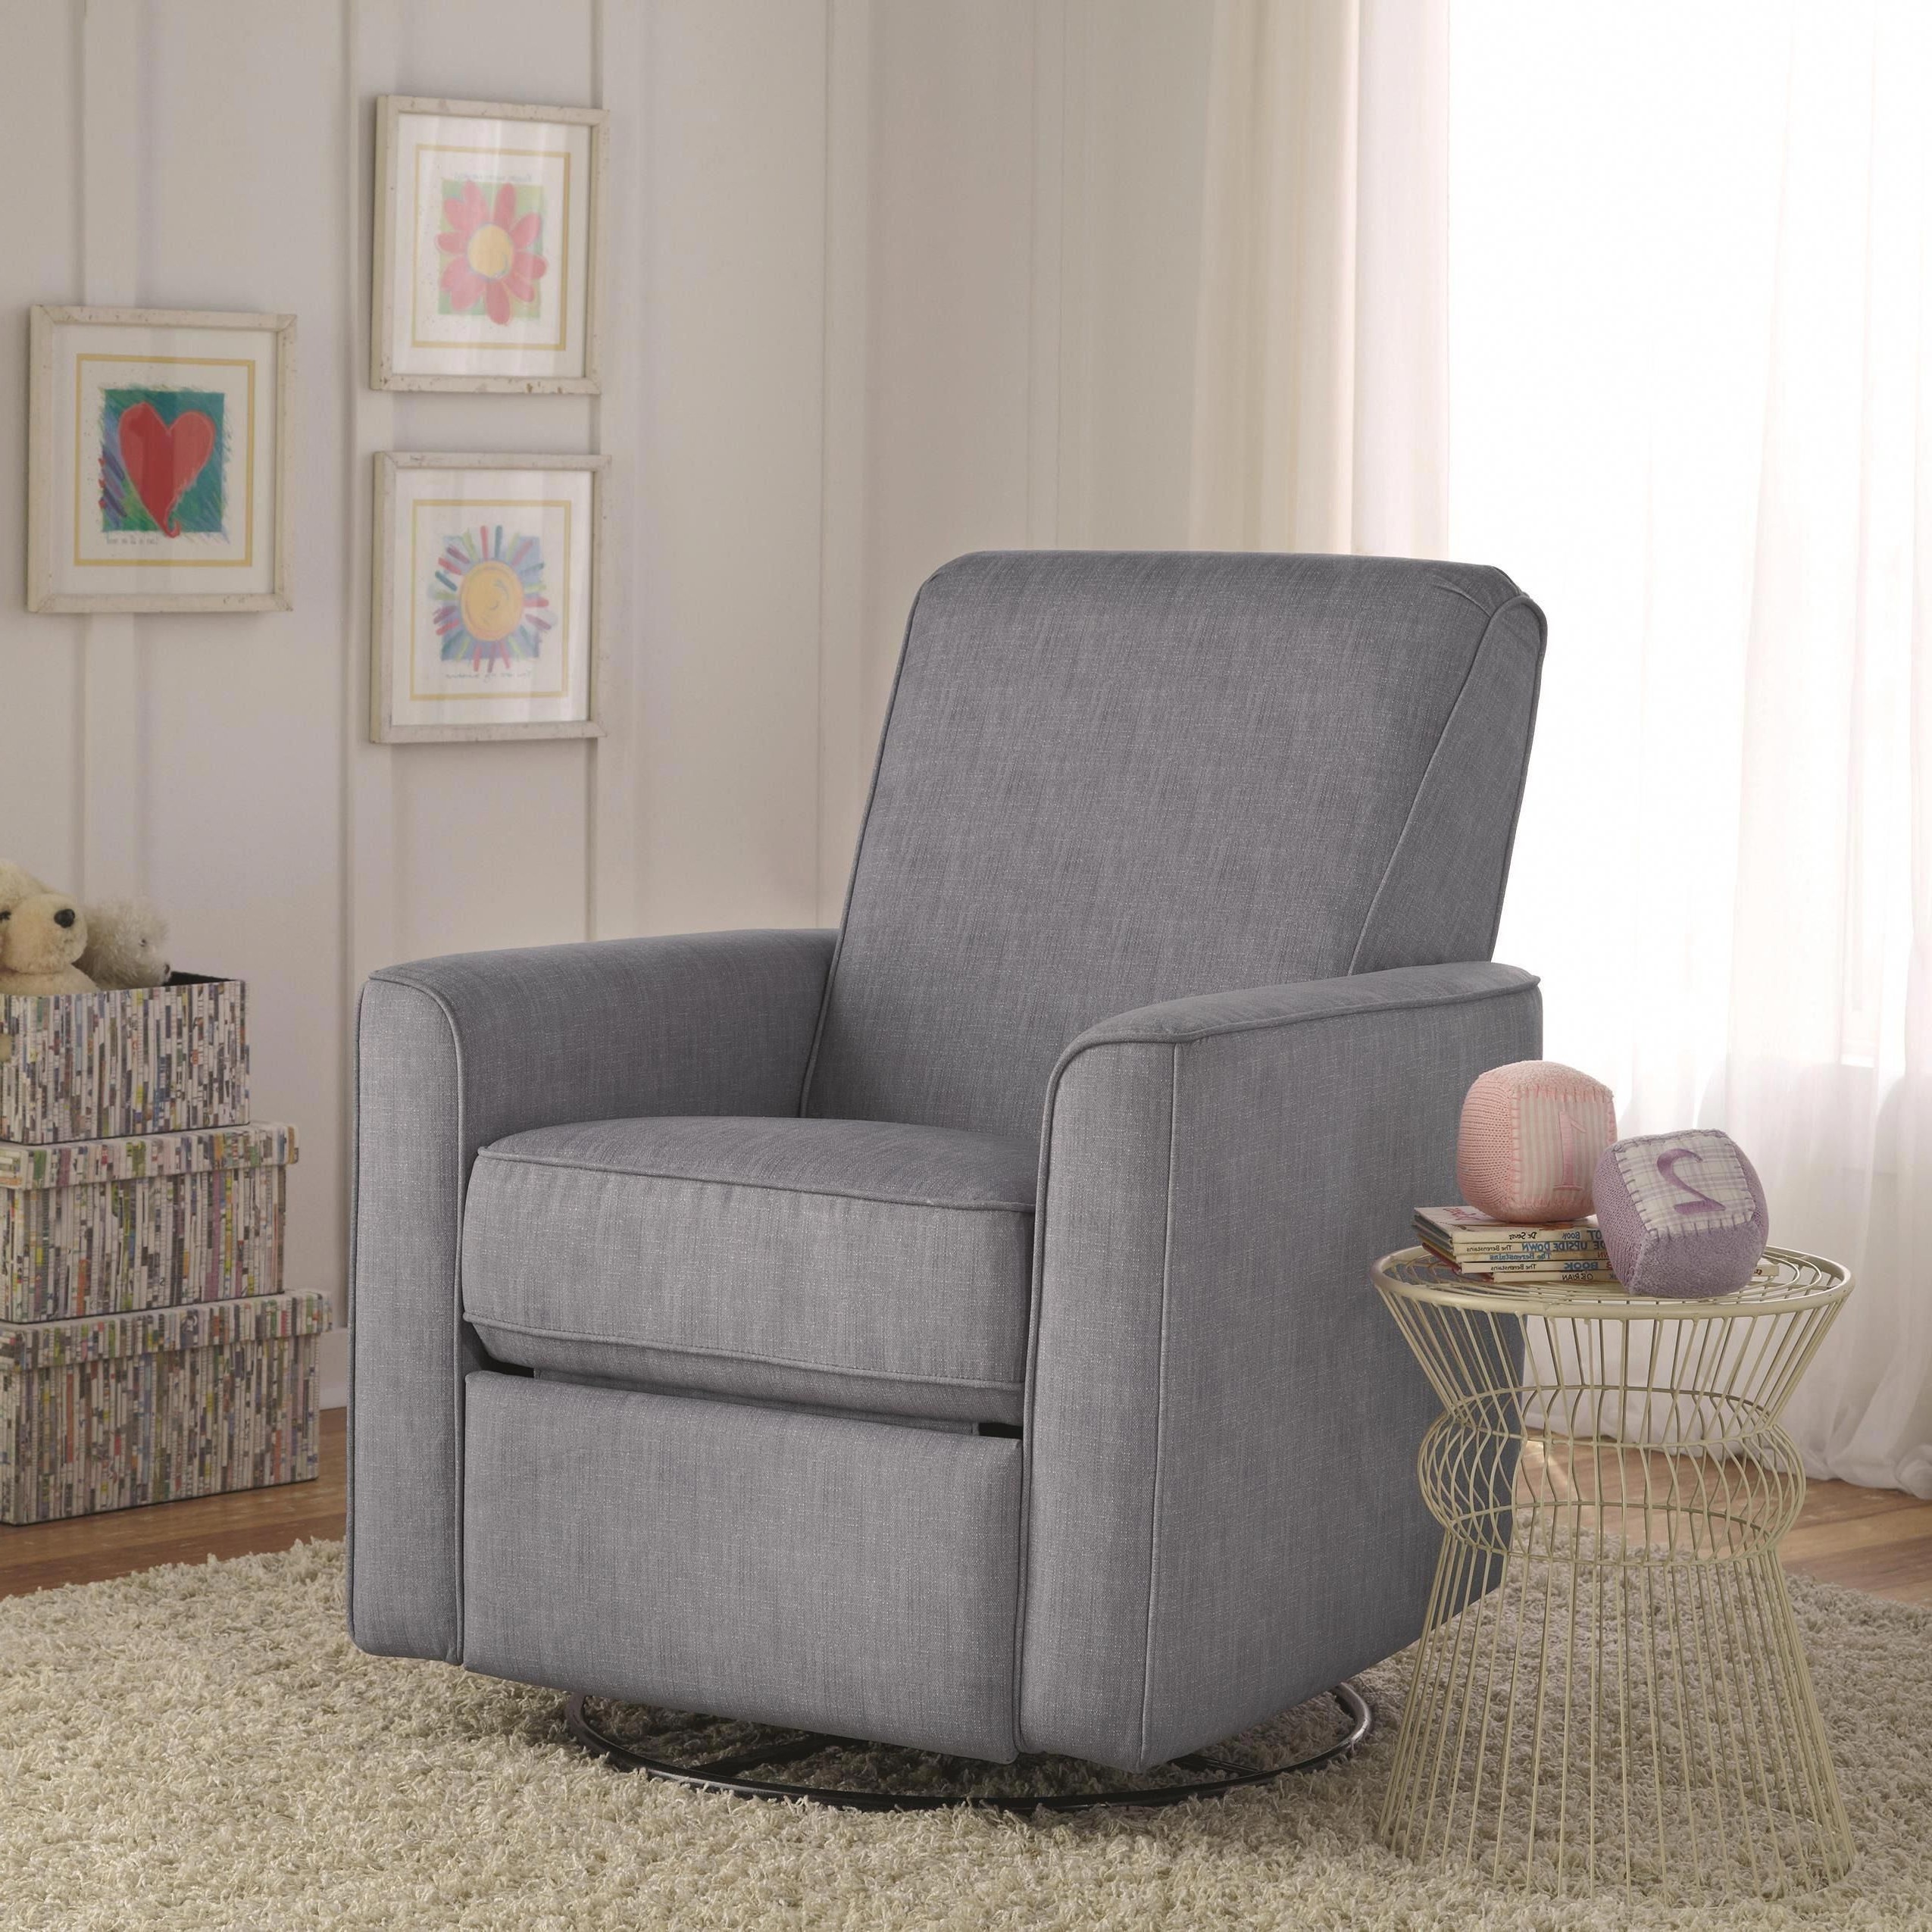 Zoey Grey Nursery Swivel Glider Recliner Chair Is Handcrafted Using In 2018 Decker Ii Fabric Swivel Glider Recliners (View 20 of 20)